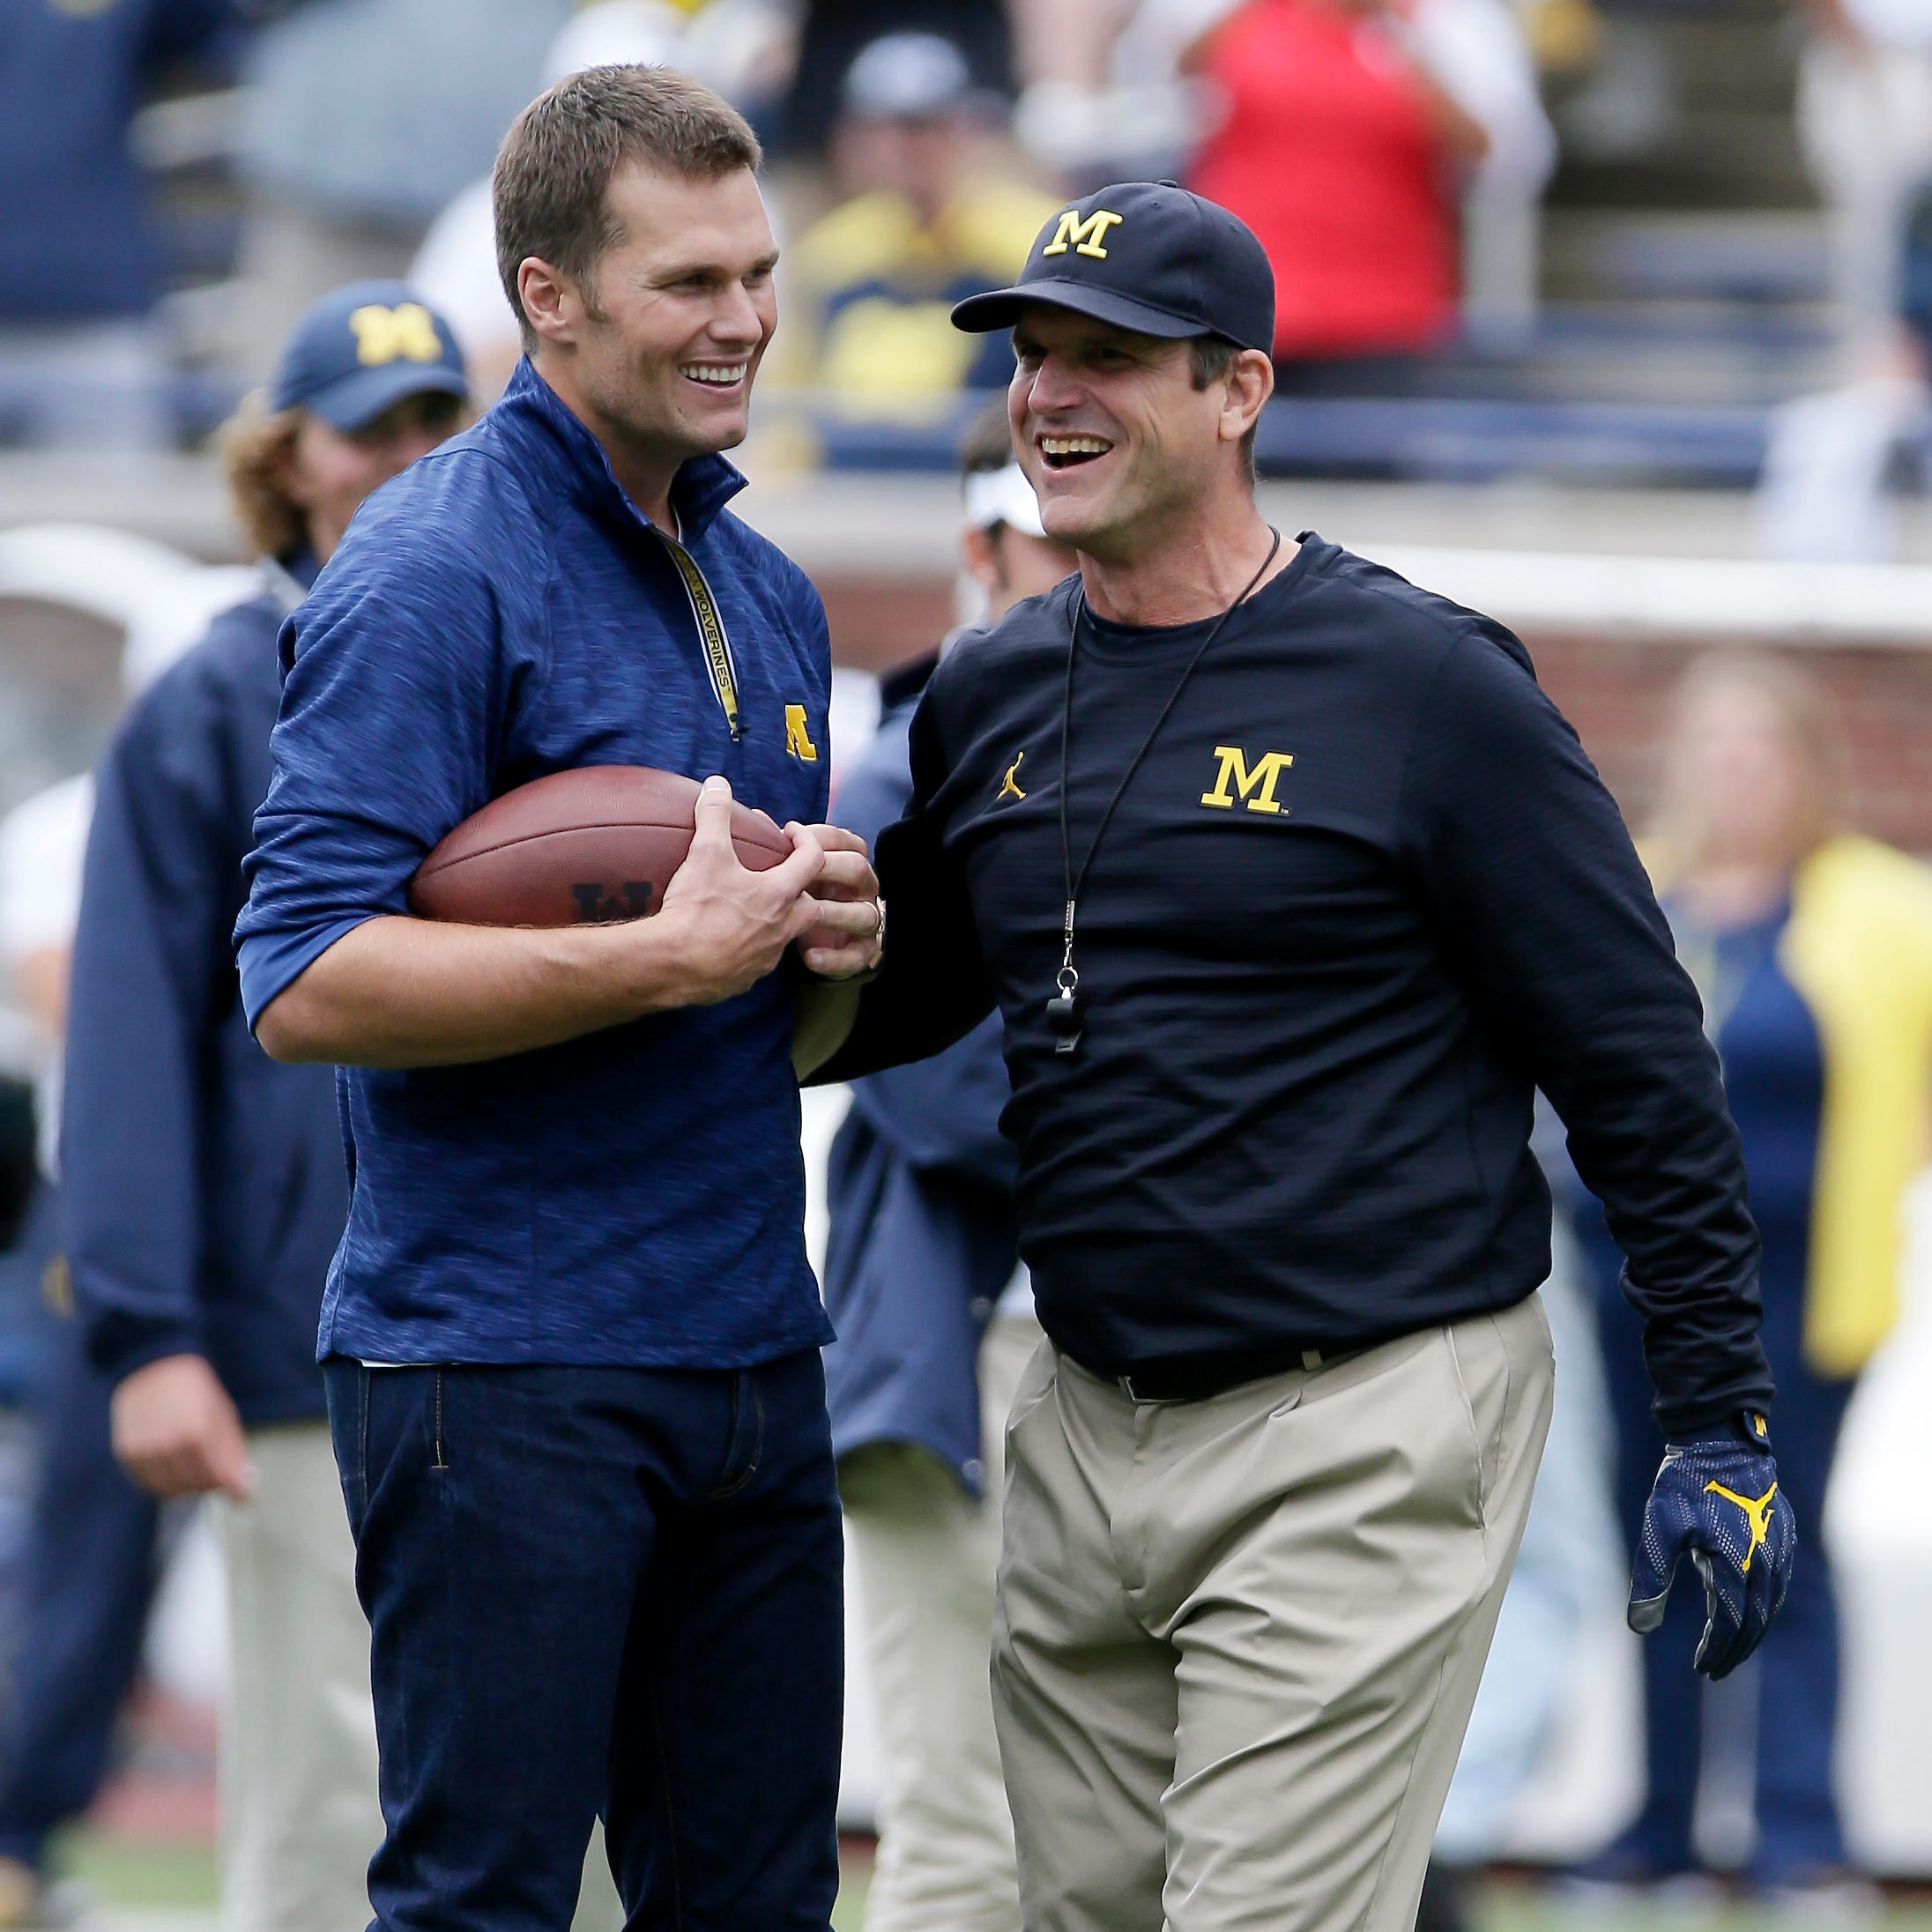 Tom Brady predicts Michigan win over Ohio State: 'This is our year'